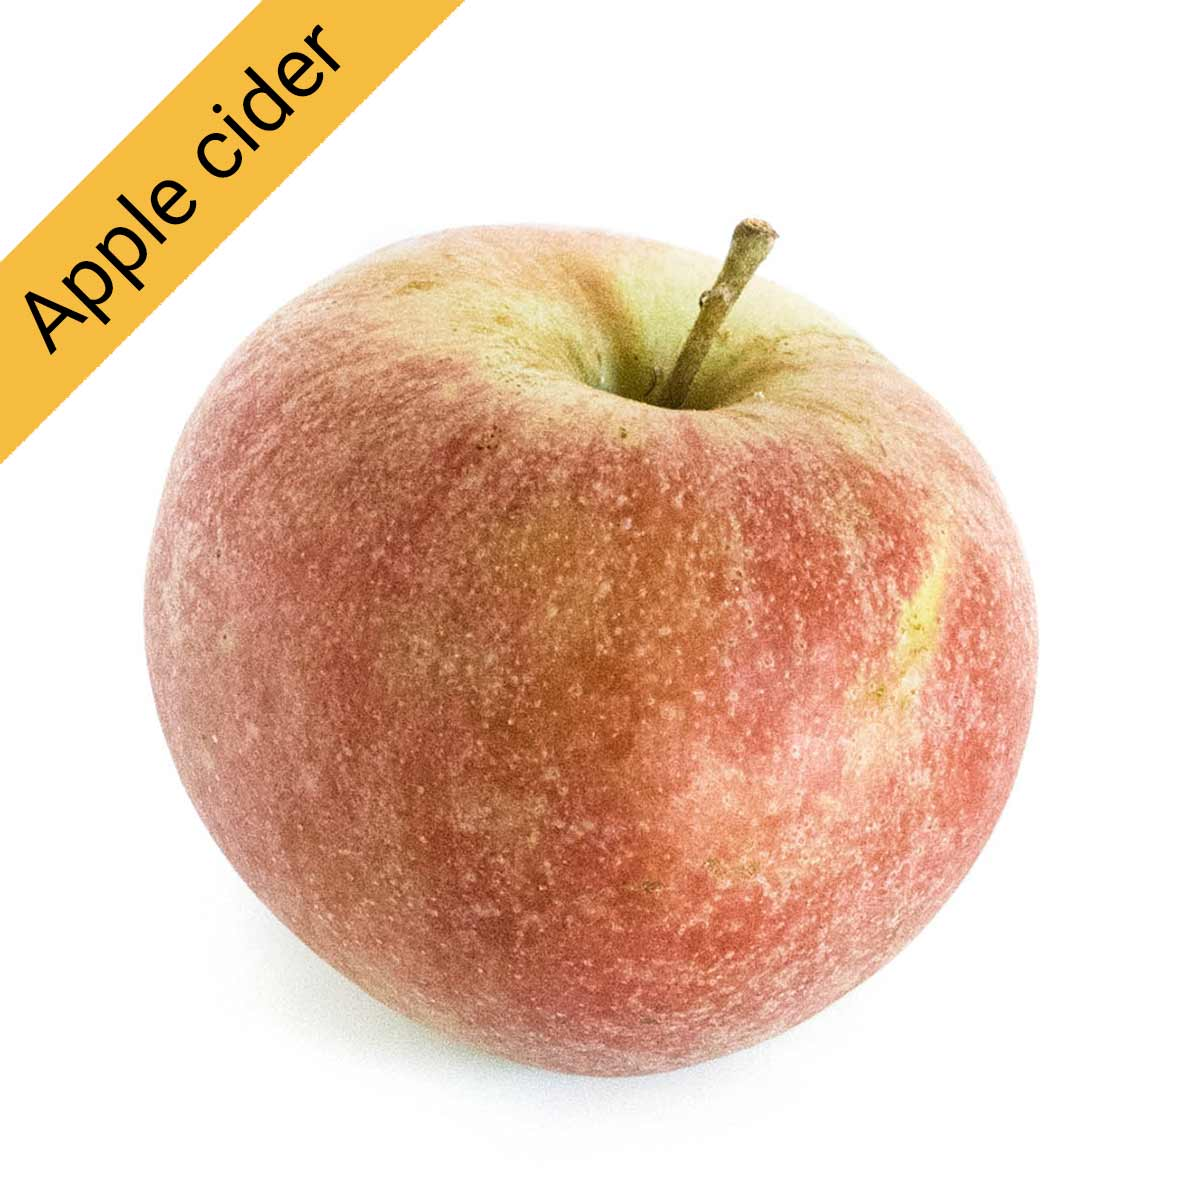 Winesap: types of apples good for cider